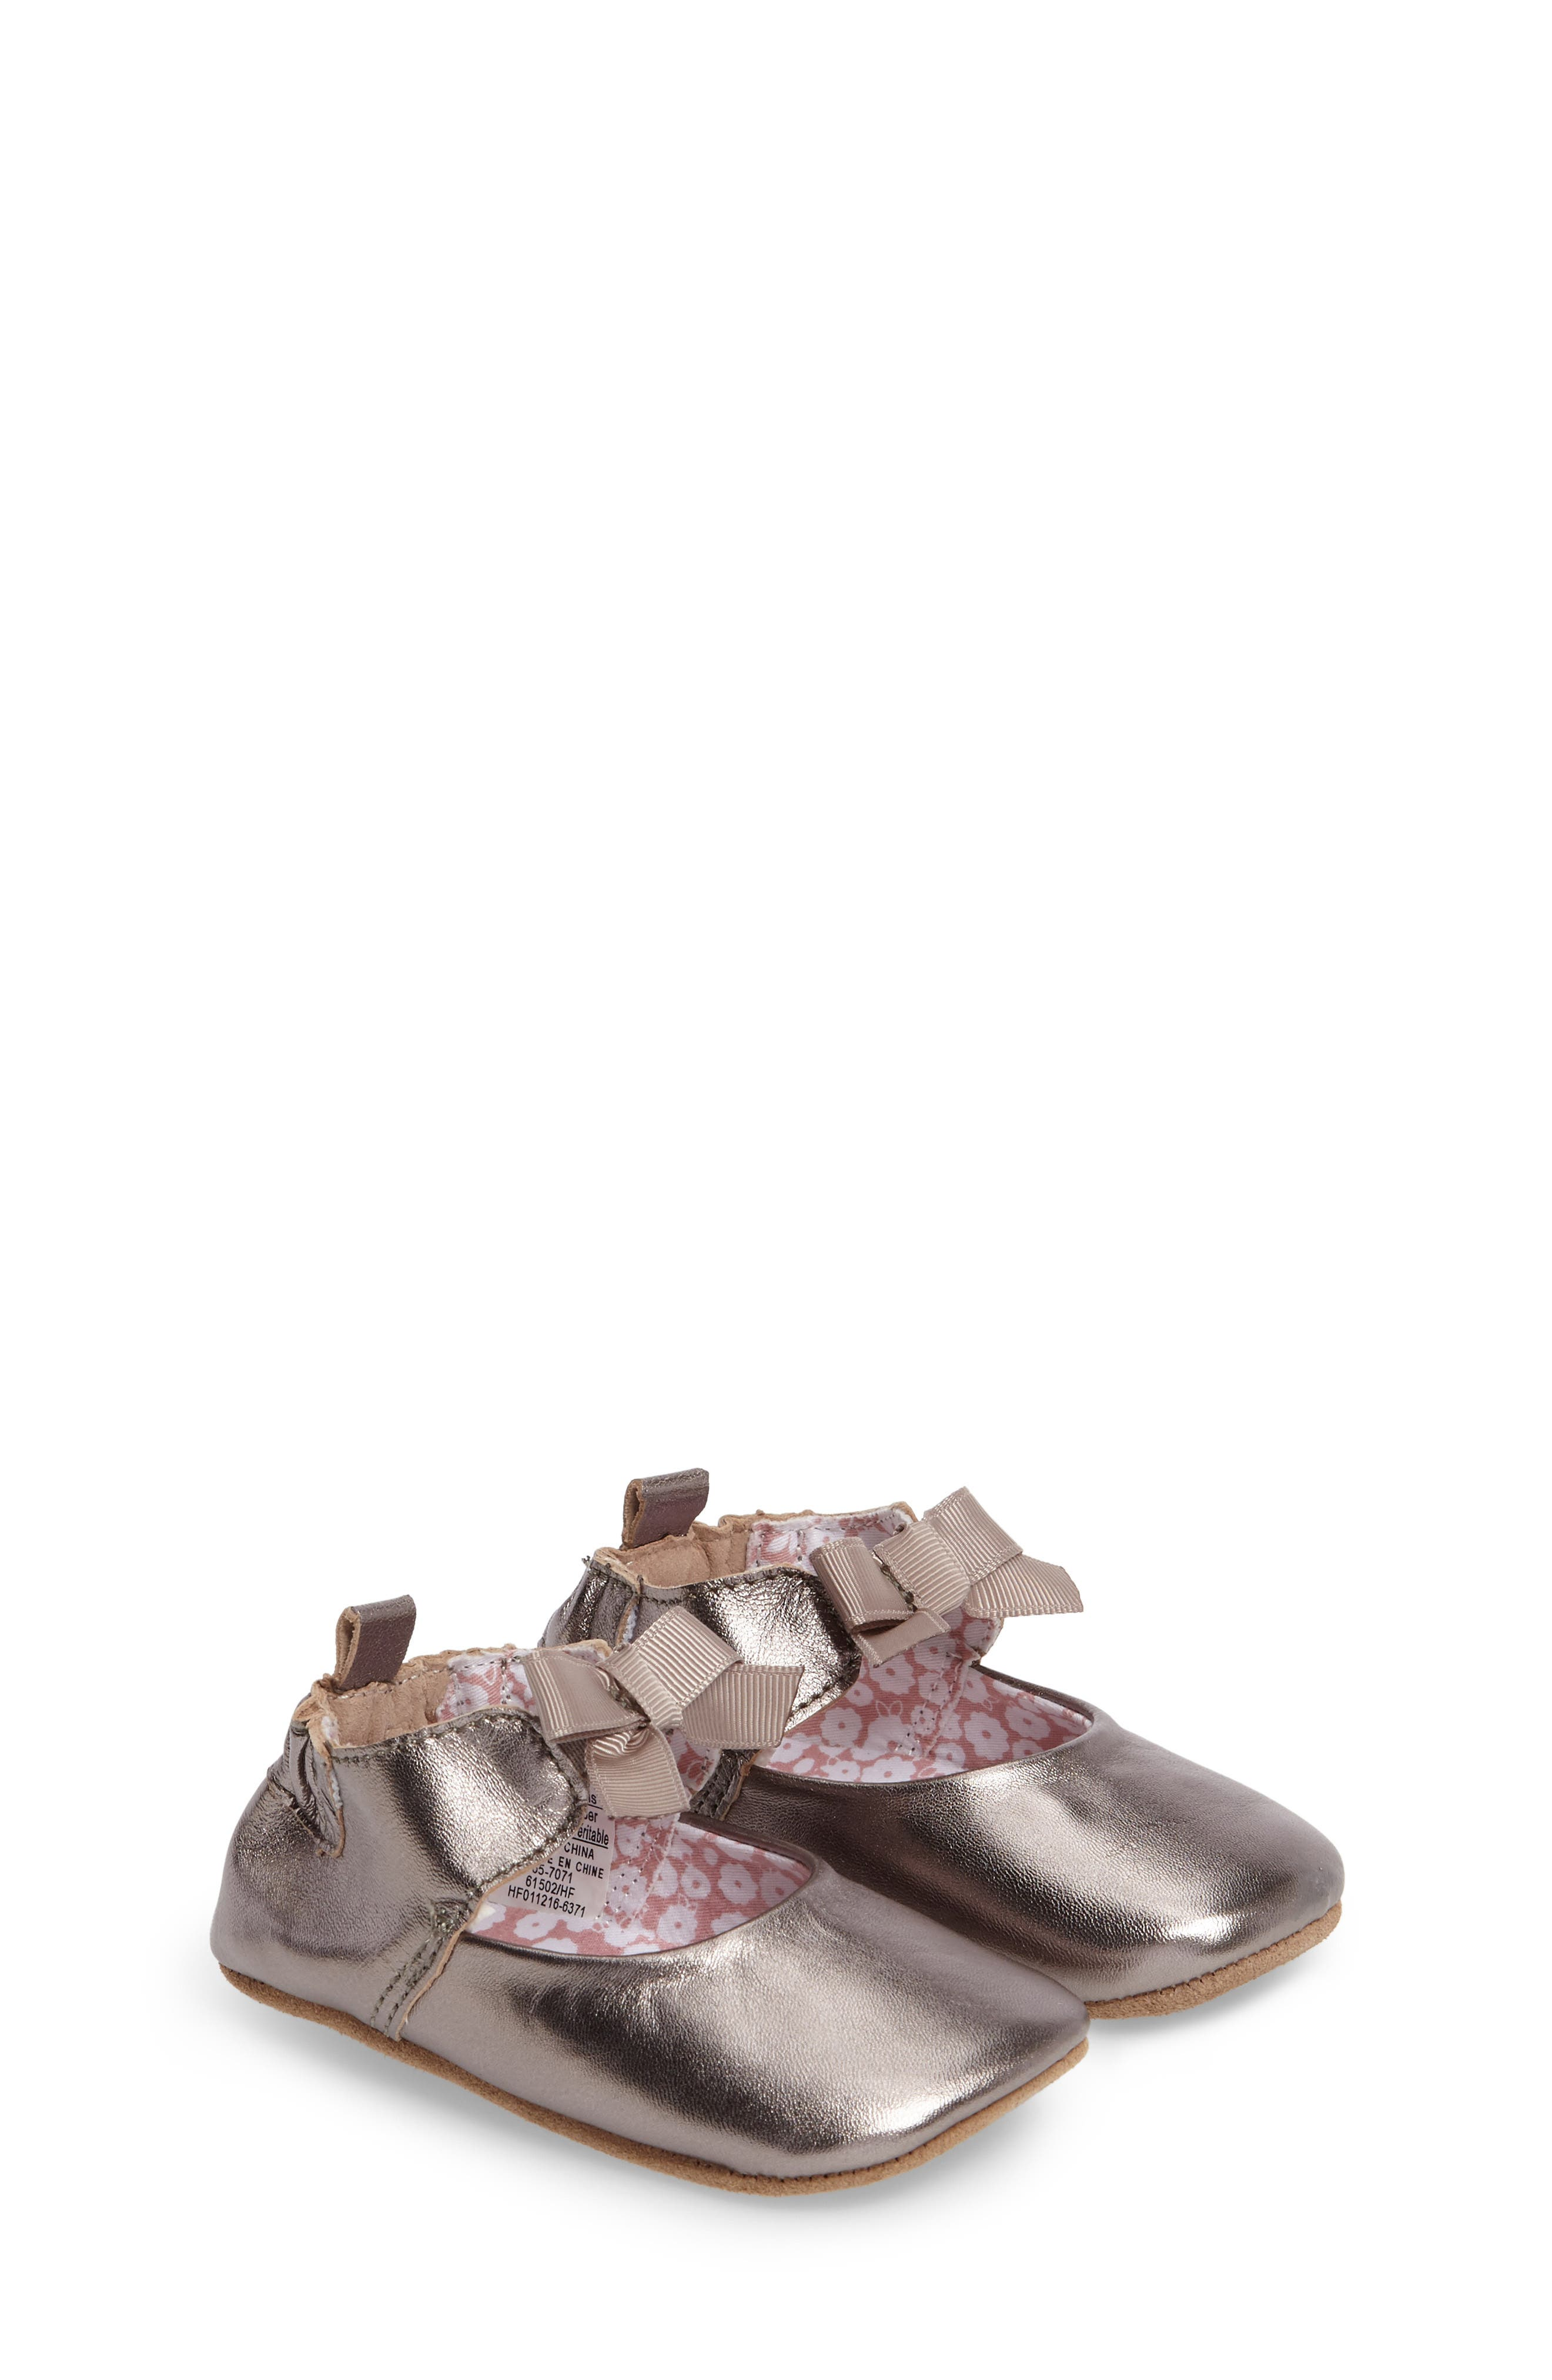 ROBEEZ<SUP>®</SUP>, Amelia Crib Shoes, Main thumbnail 1, color, GREY